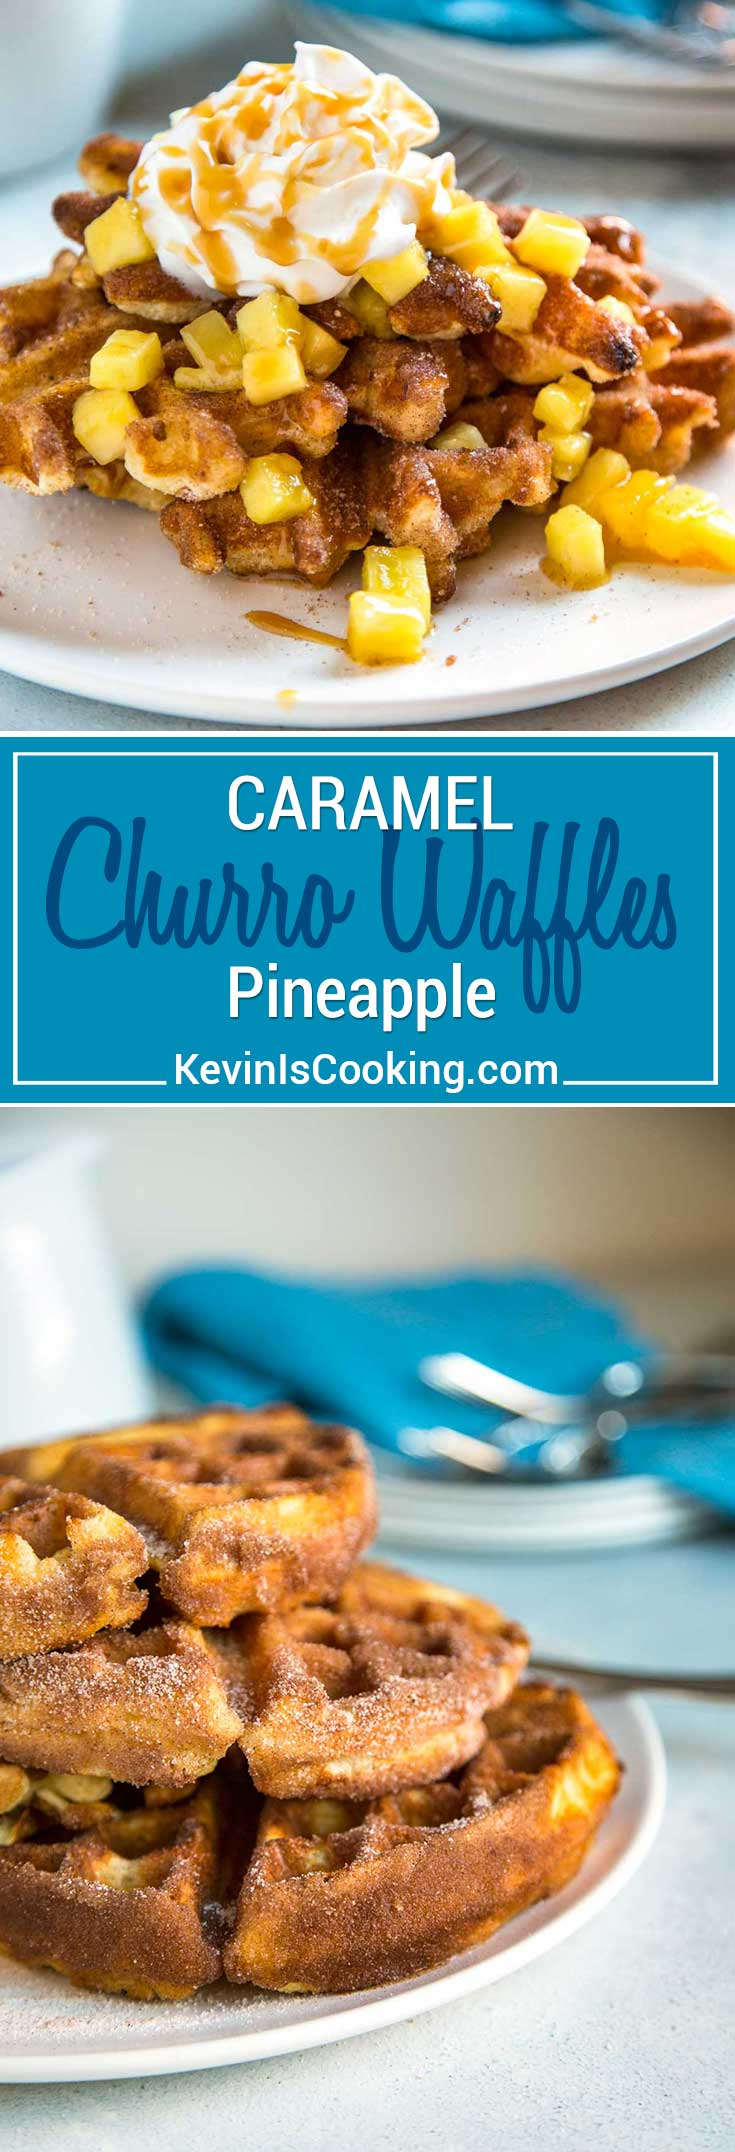 My Churro Waffles start with a fluffy, whipped batter to keep them light and after getting a cinnamon sugar dusting are topped with caramel pineapple bits.